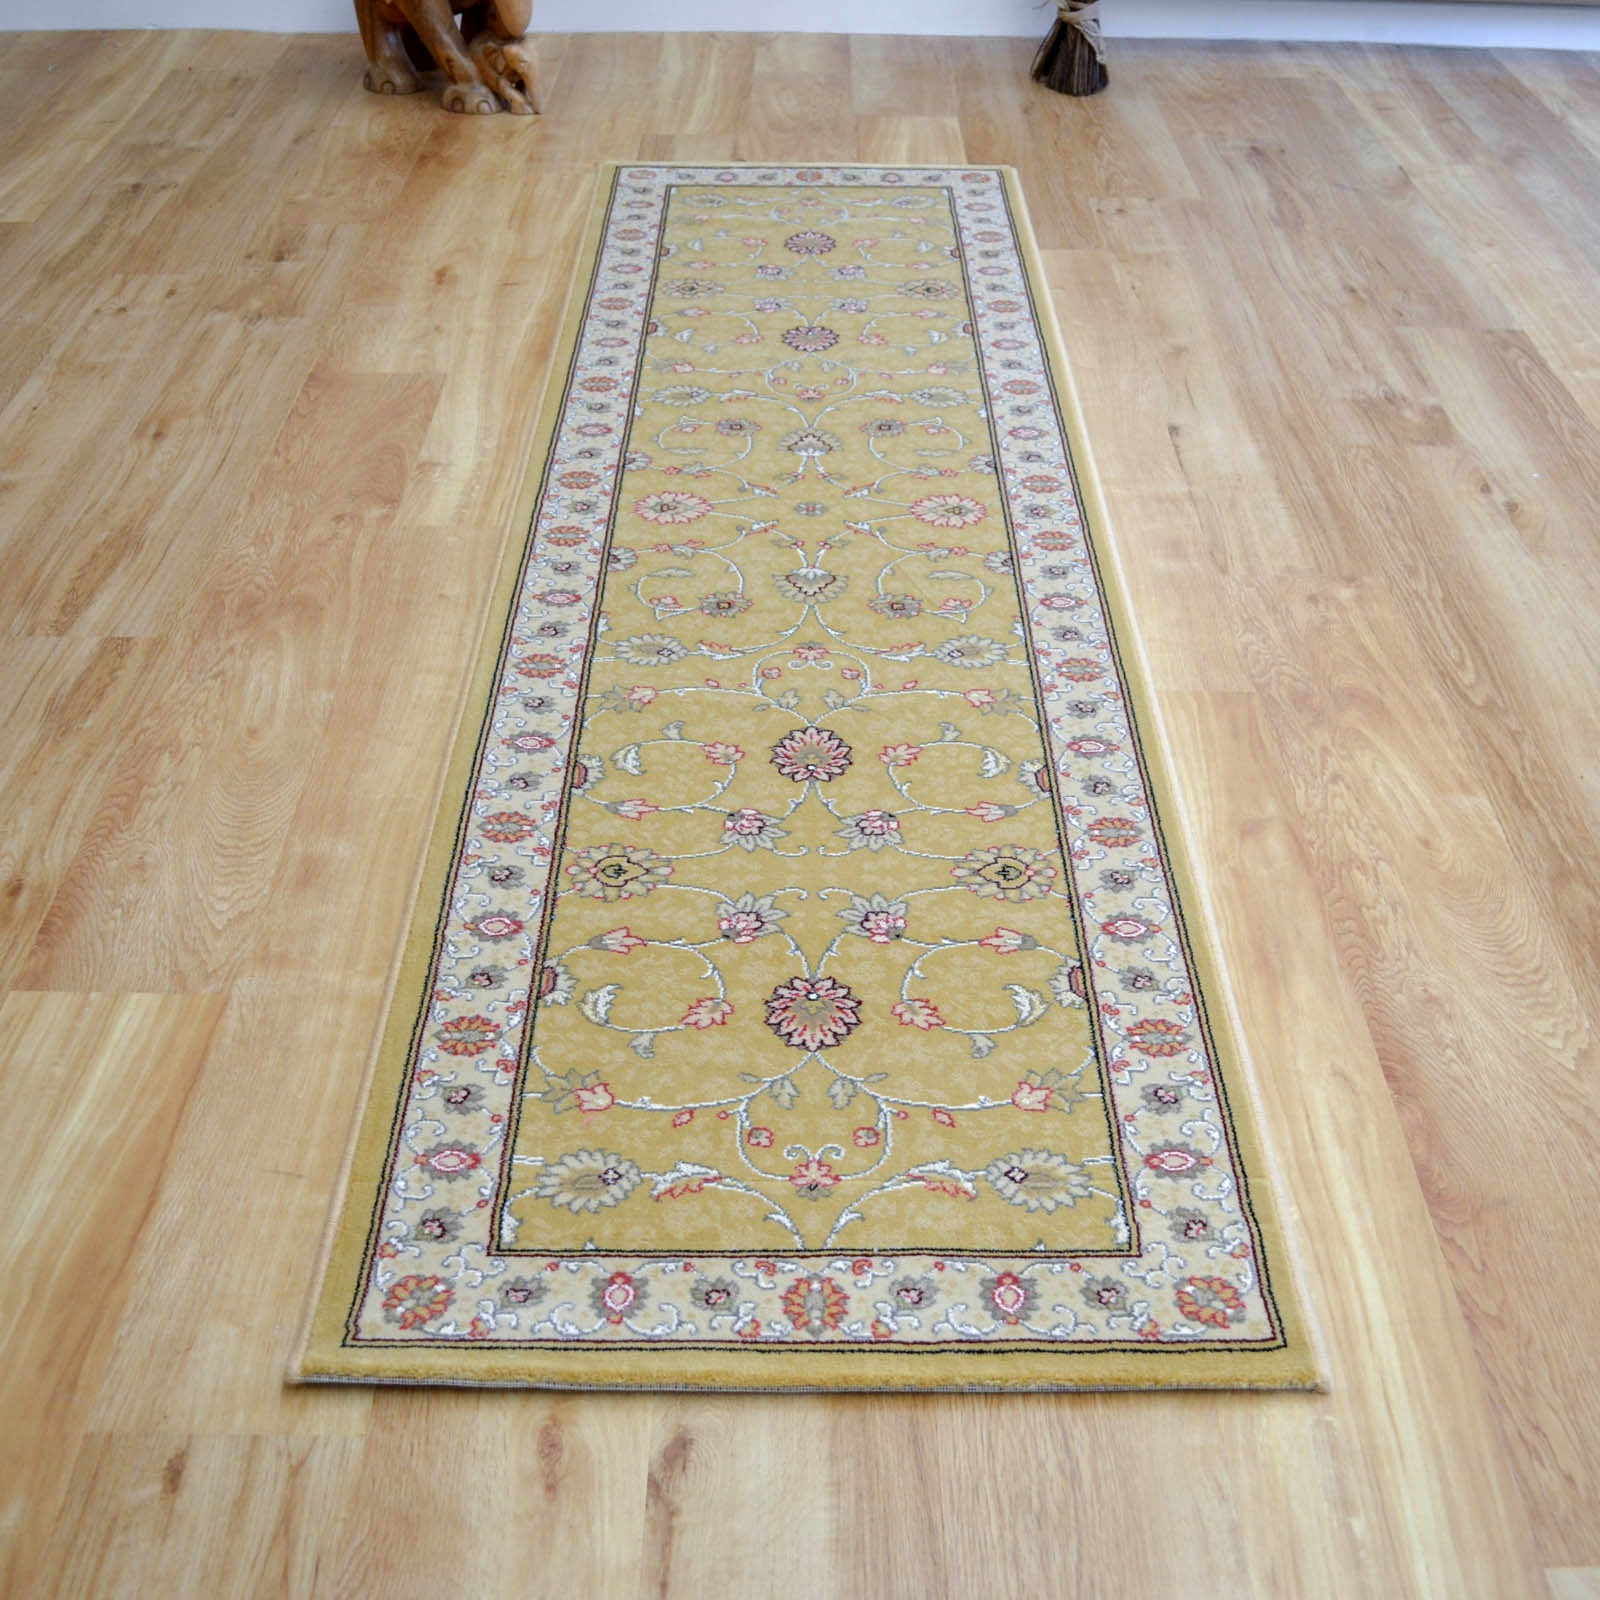 20 Inspirations Of Runner Hallway Rugs: 20 Collection Of Long Rug Runners For Hallways